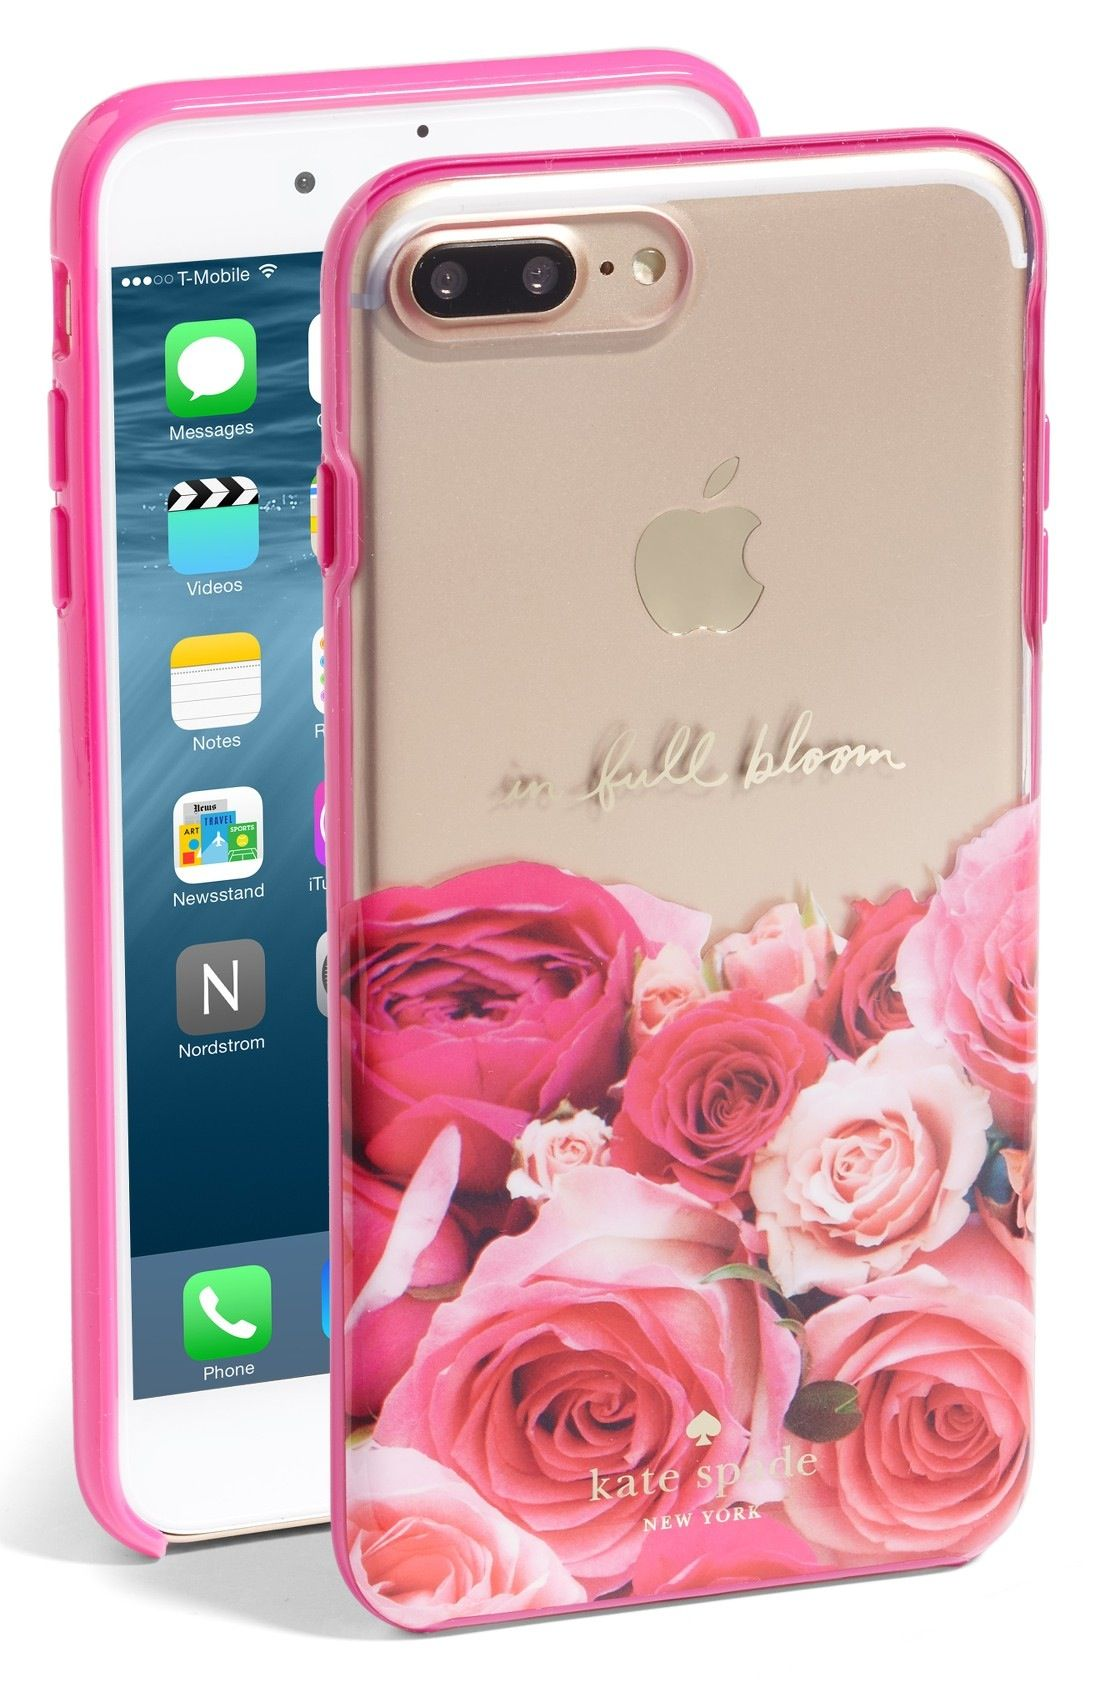 separation shoes da9c6 3f4a4 kate spade new york in full bloom iPhone 7 Plus case available at ...